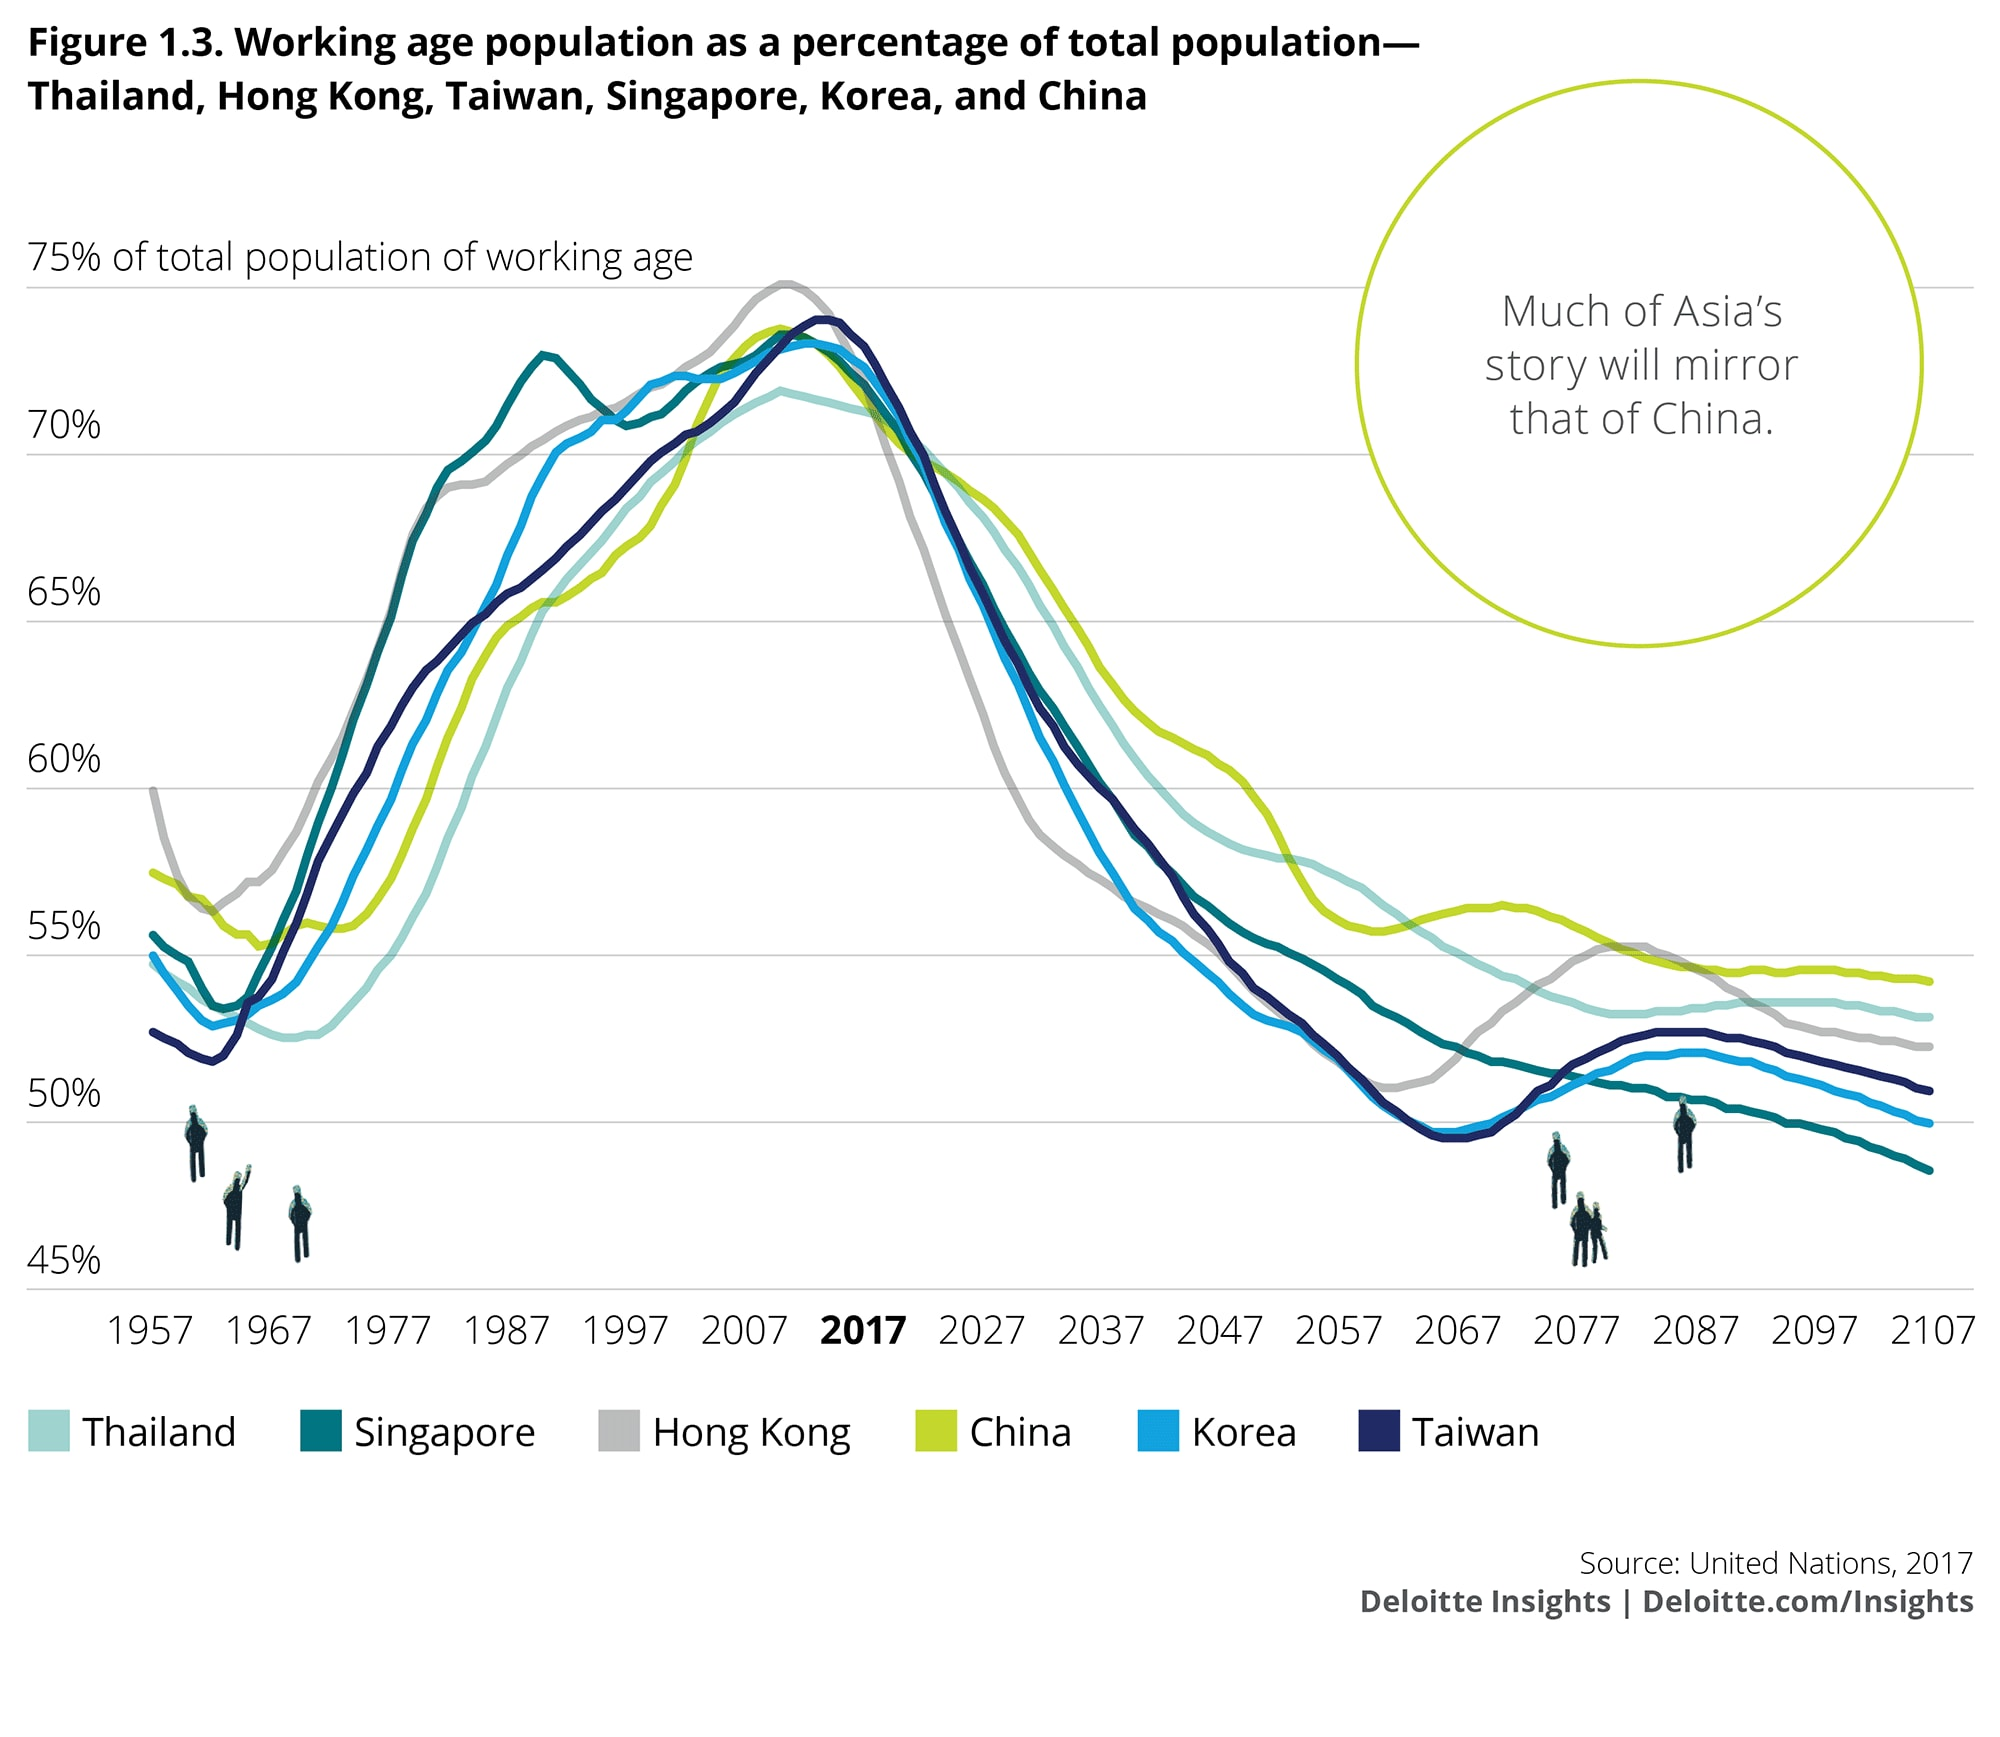 Working age population as a percentage of total population: Thailand, Hong Kong, Taiwan, Singapore, Korea, and China